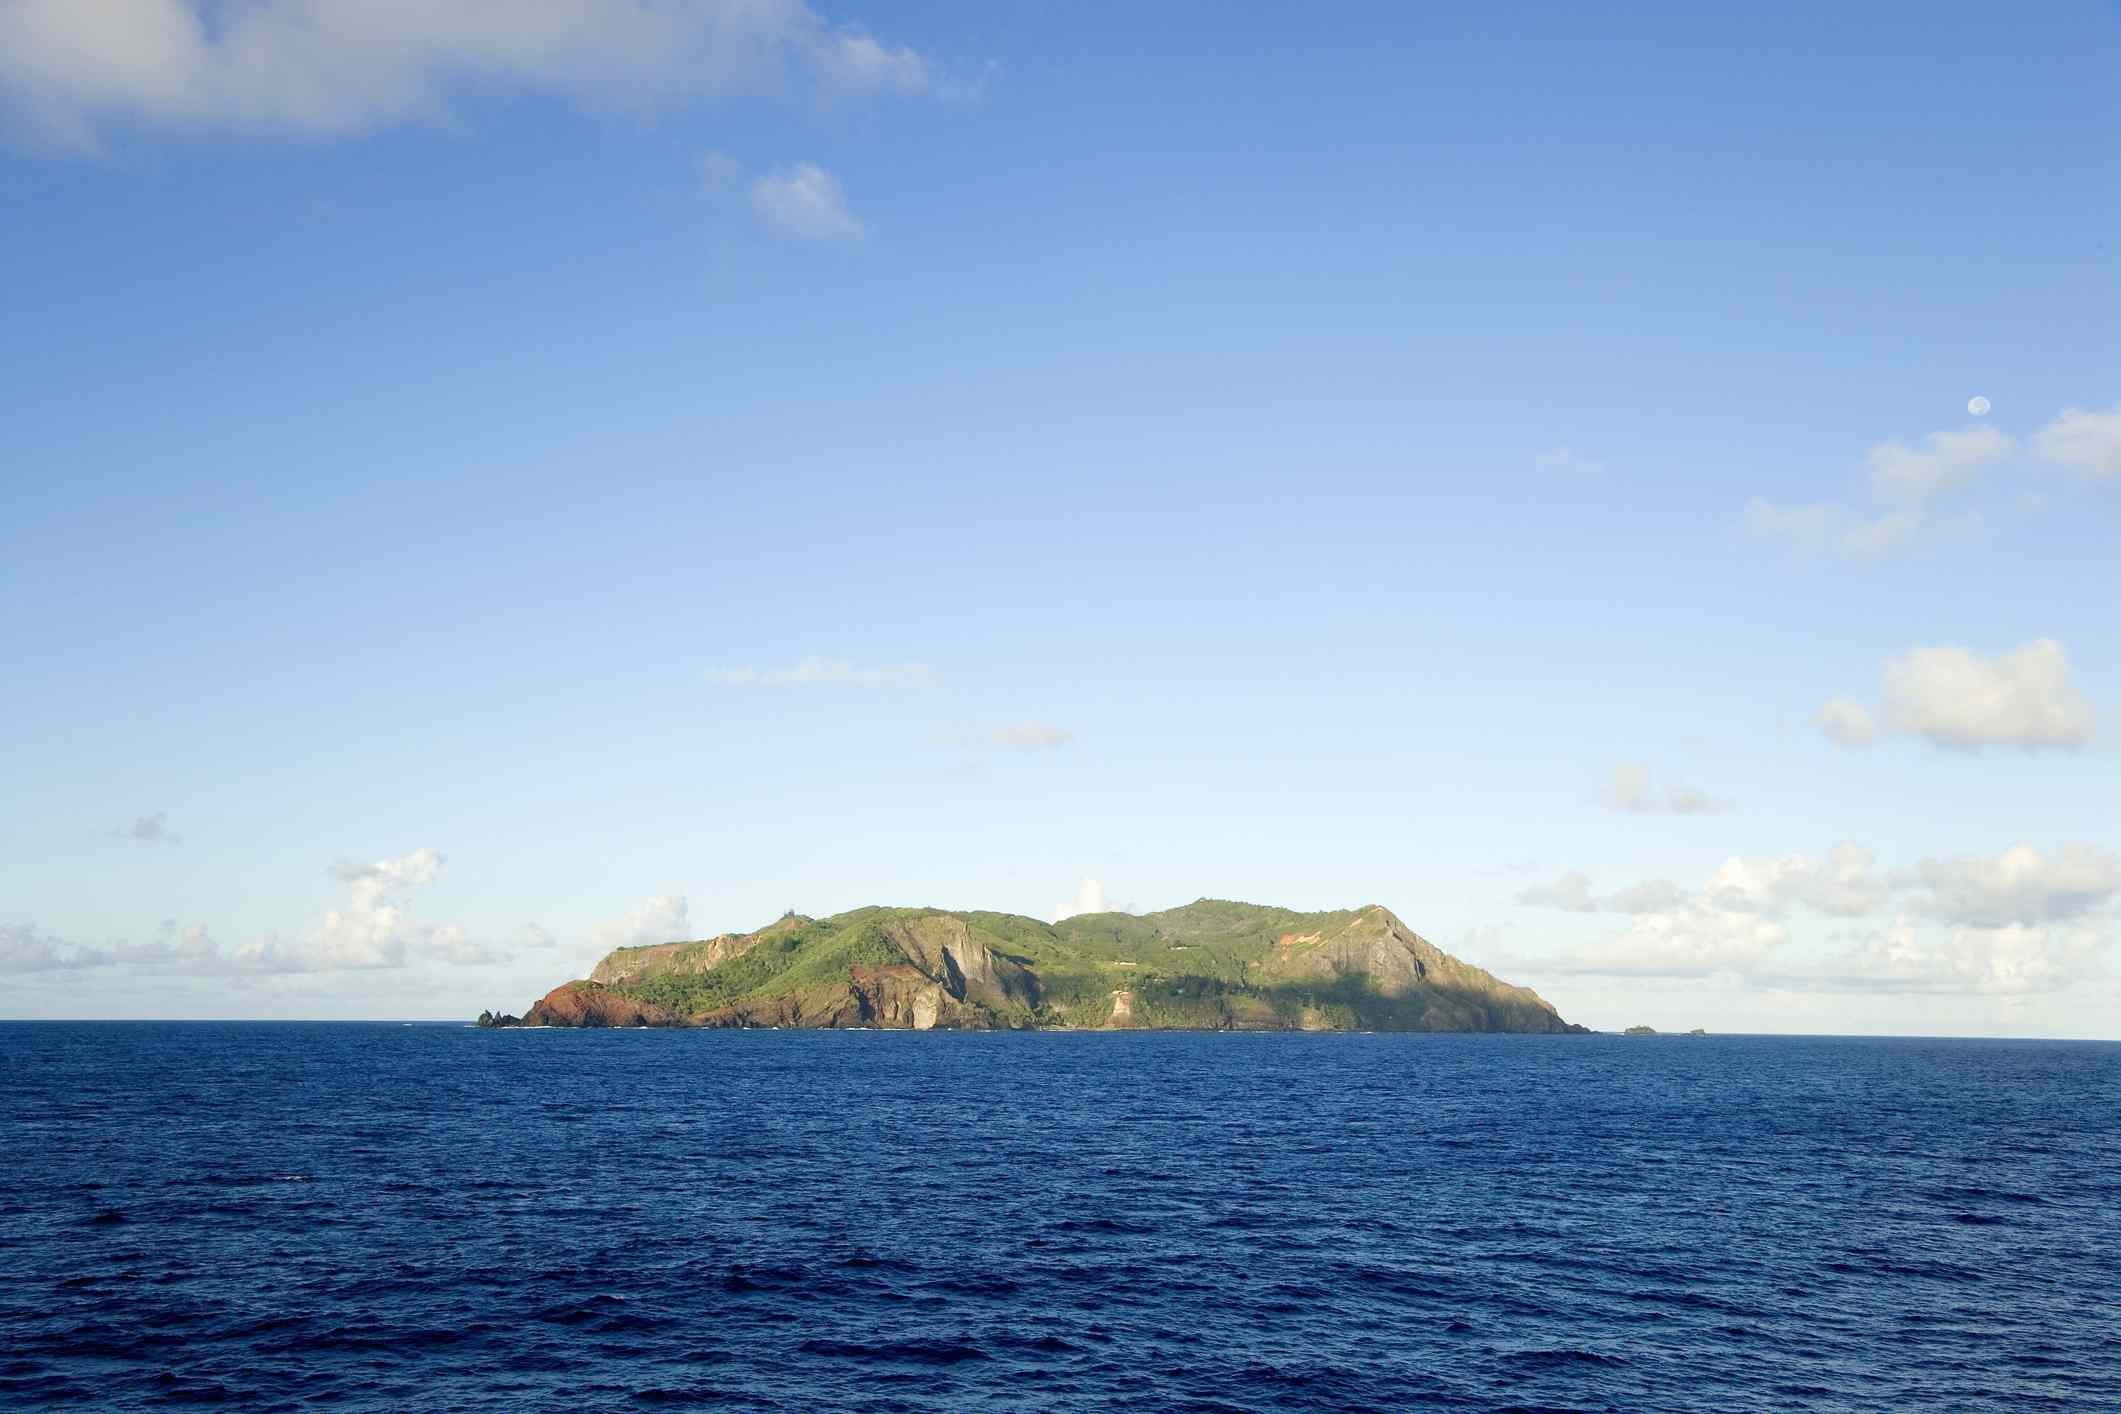 Henderson Island in the South Pacific